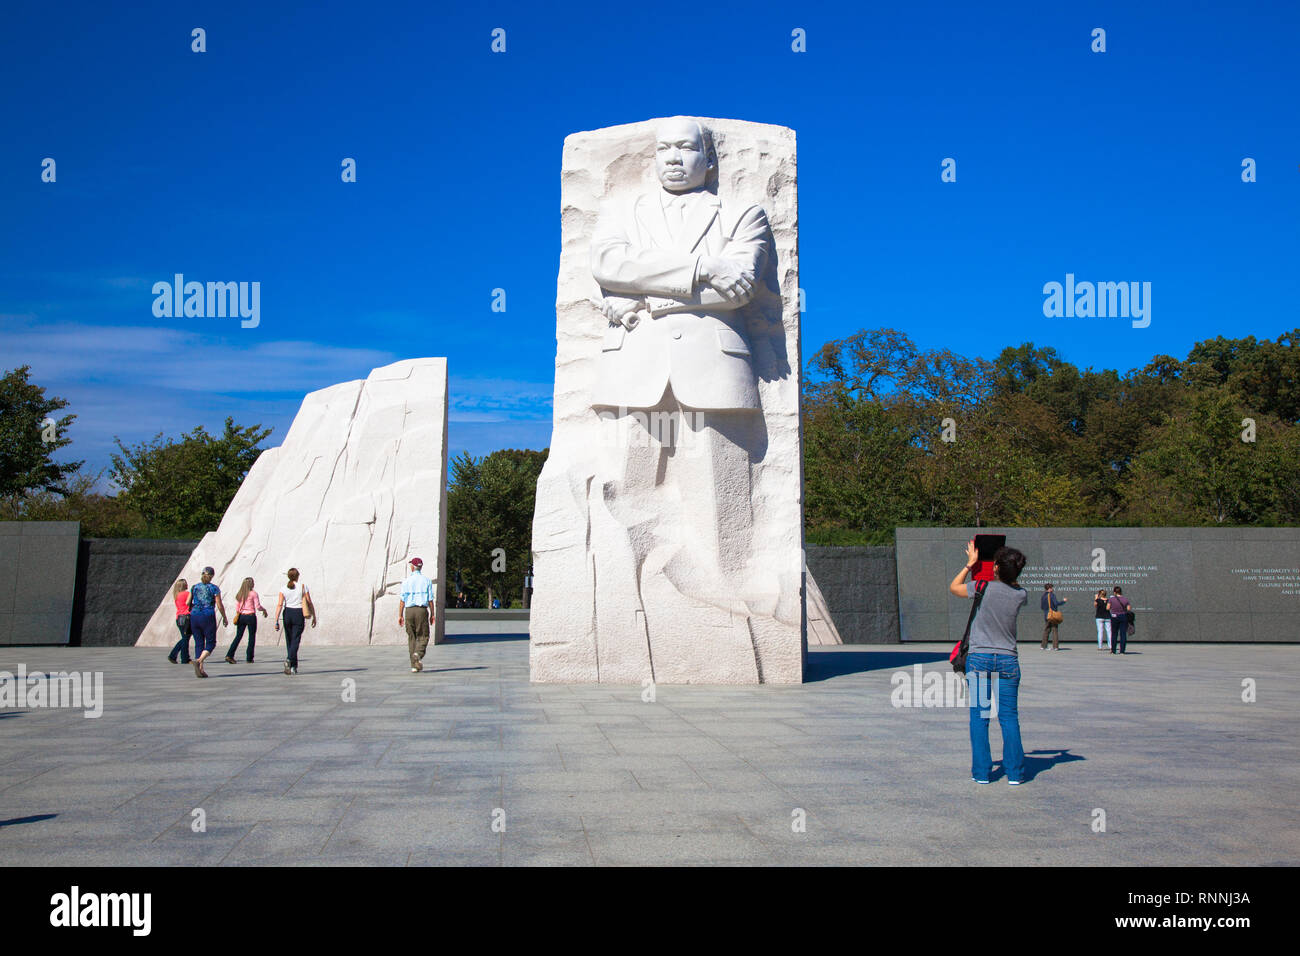 USA, WASHINGTON DC. Monument Dr. Martin Luther King, Jefferson memorial at sunny day. The statue. Stock Photo